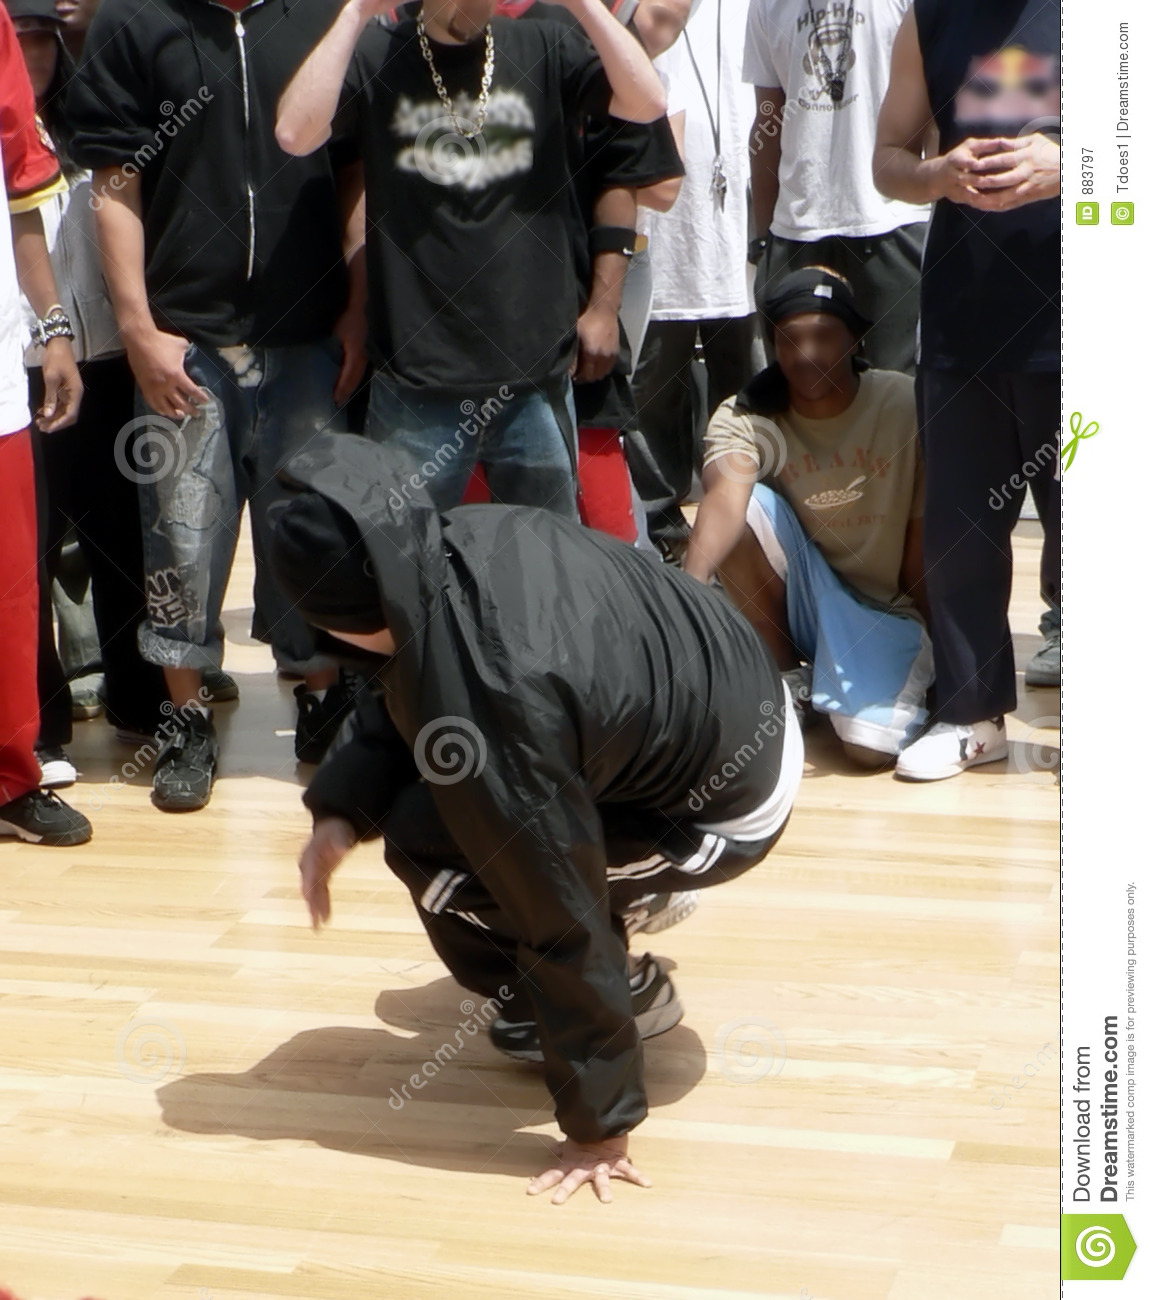 Breakdance 5 hip hop